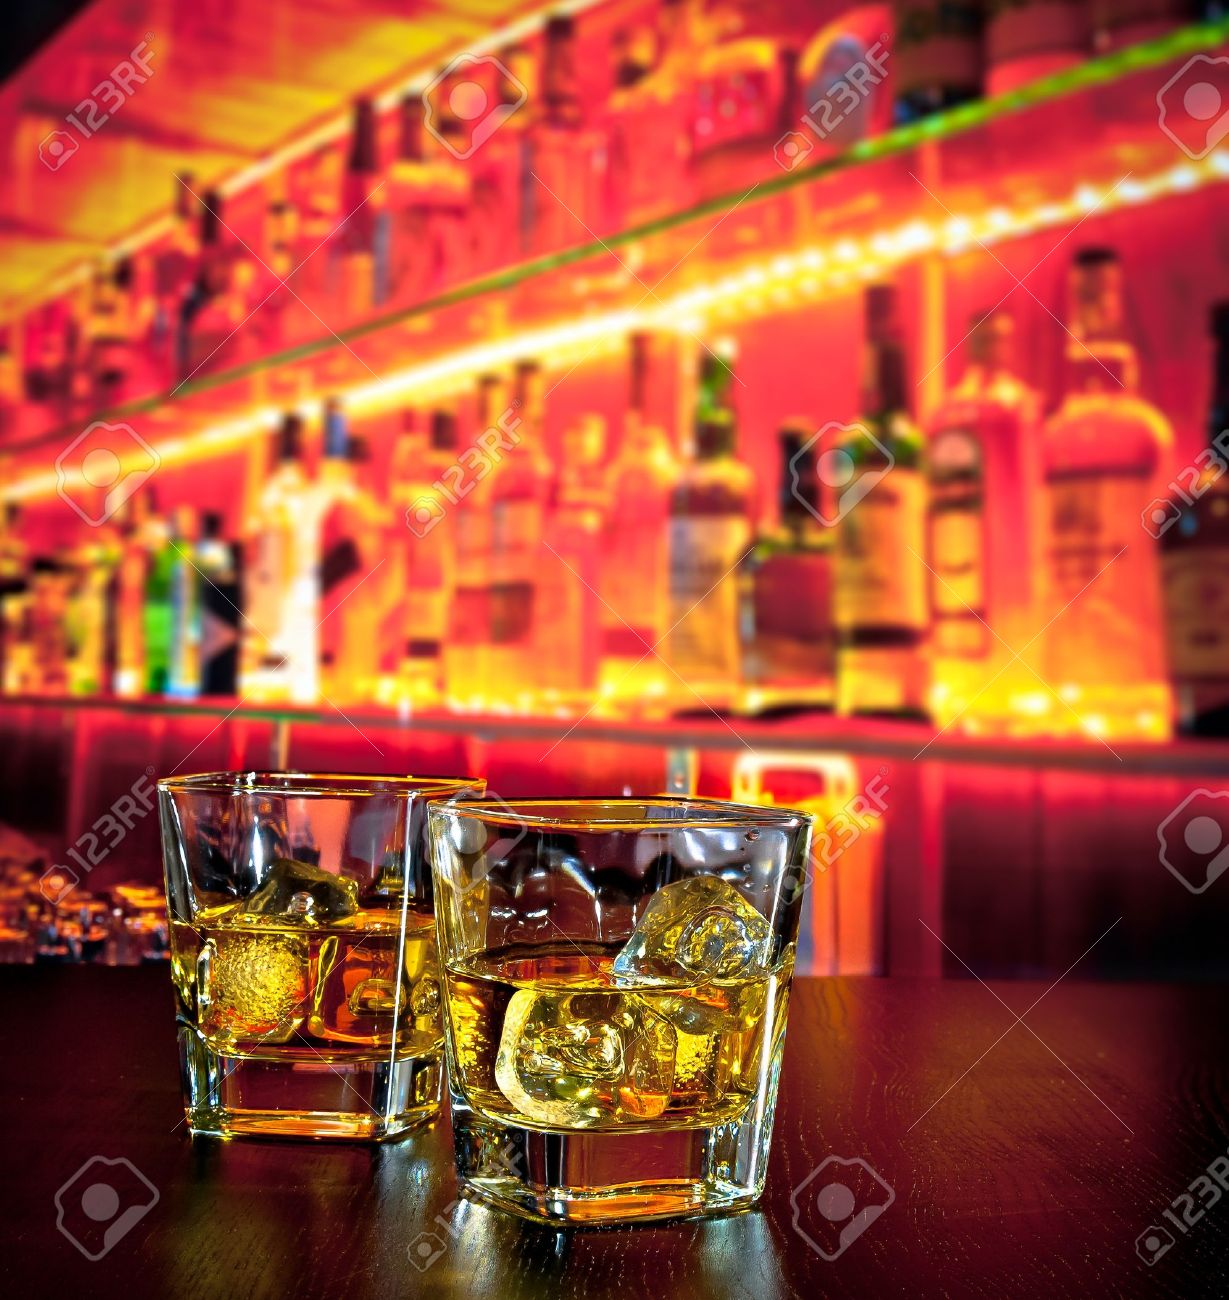 glasses of whiskey with ice on bar table near whiskey bottle on warm atmosphere lounge bar concept - 31406036